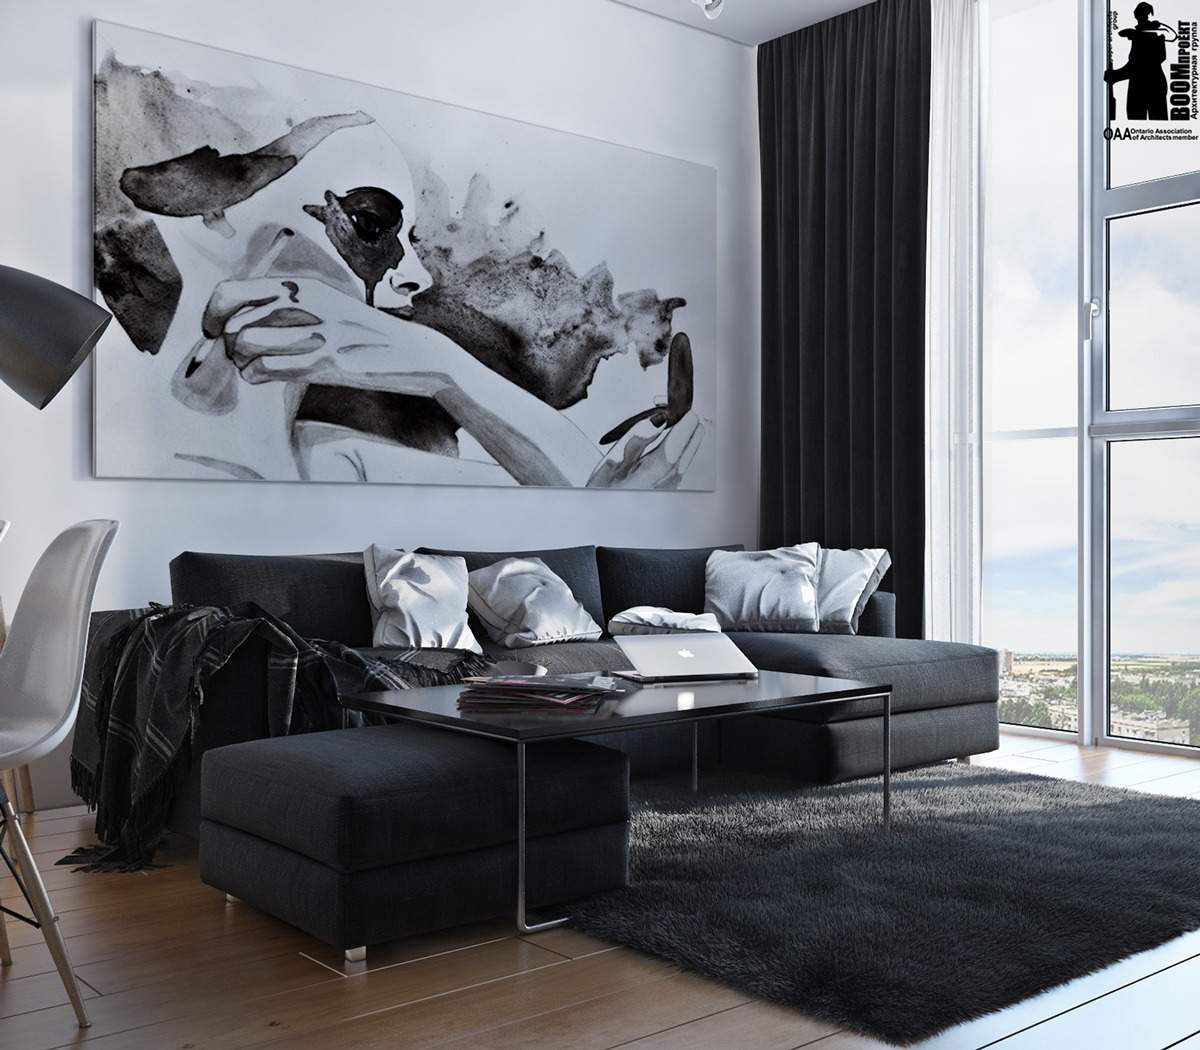 Decorating With Black White: Small Artsy Monochromatic Loft With A Luxe Vibe